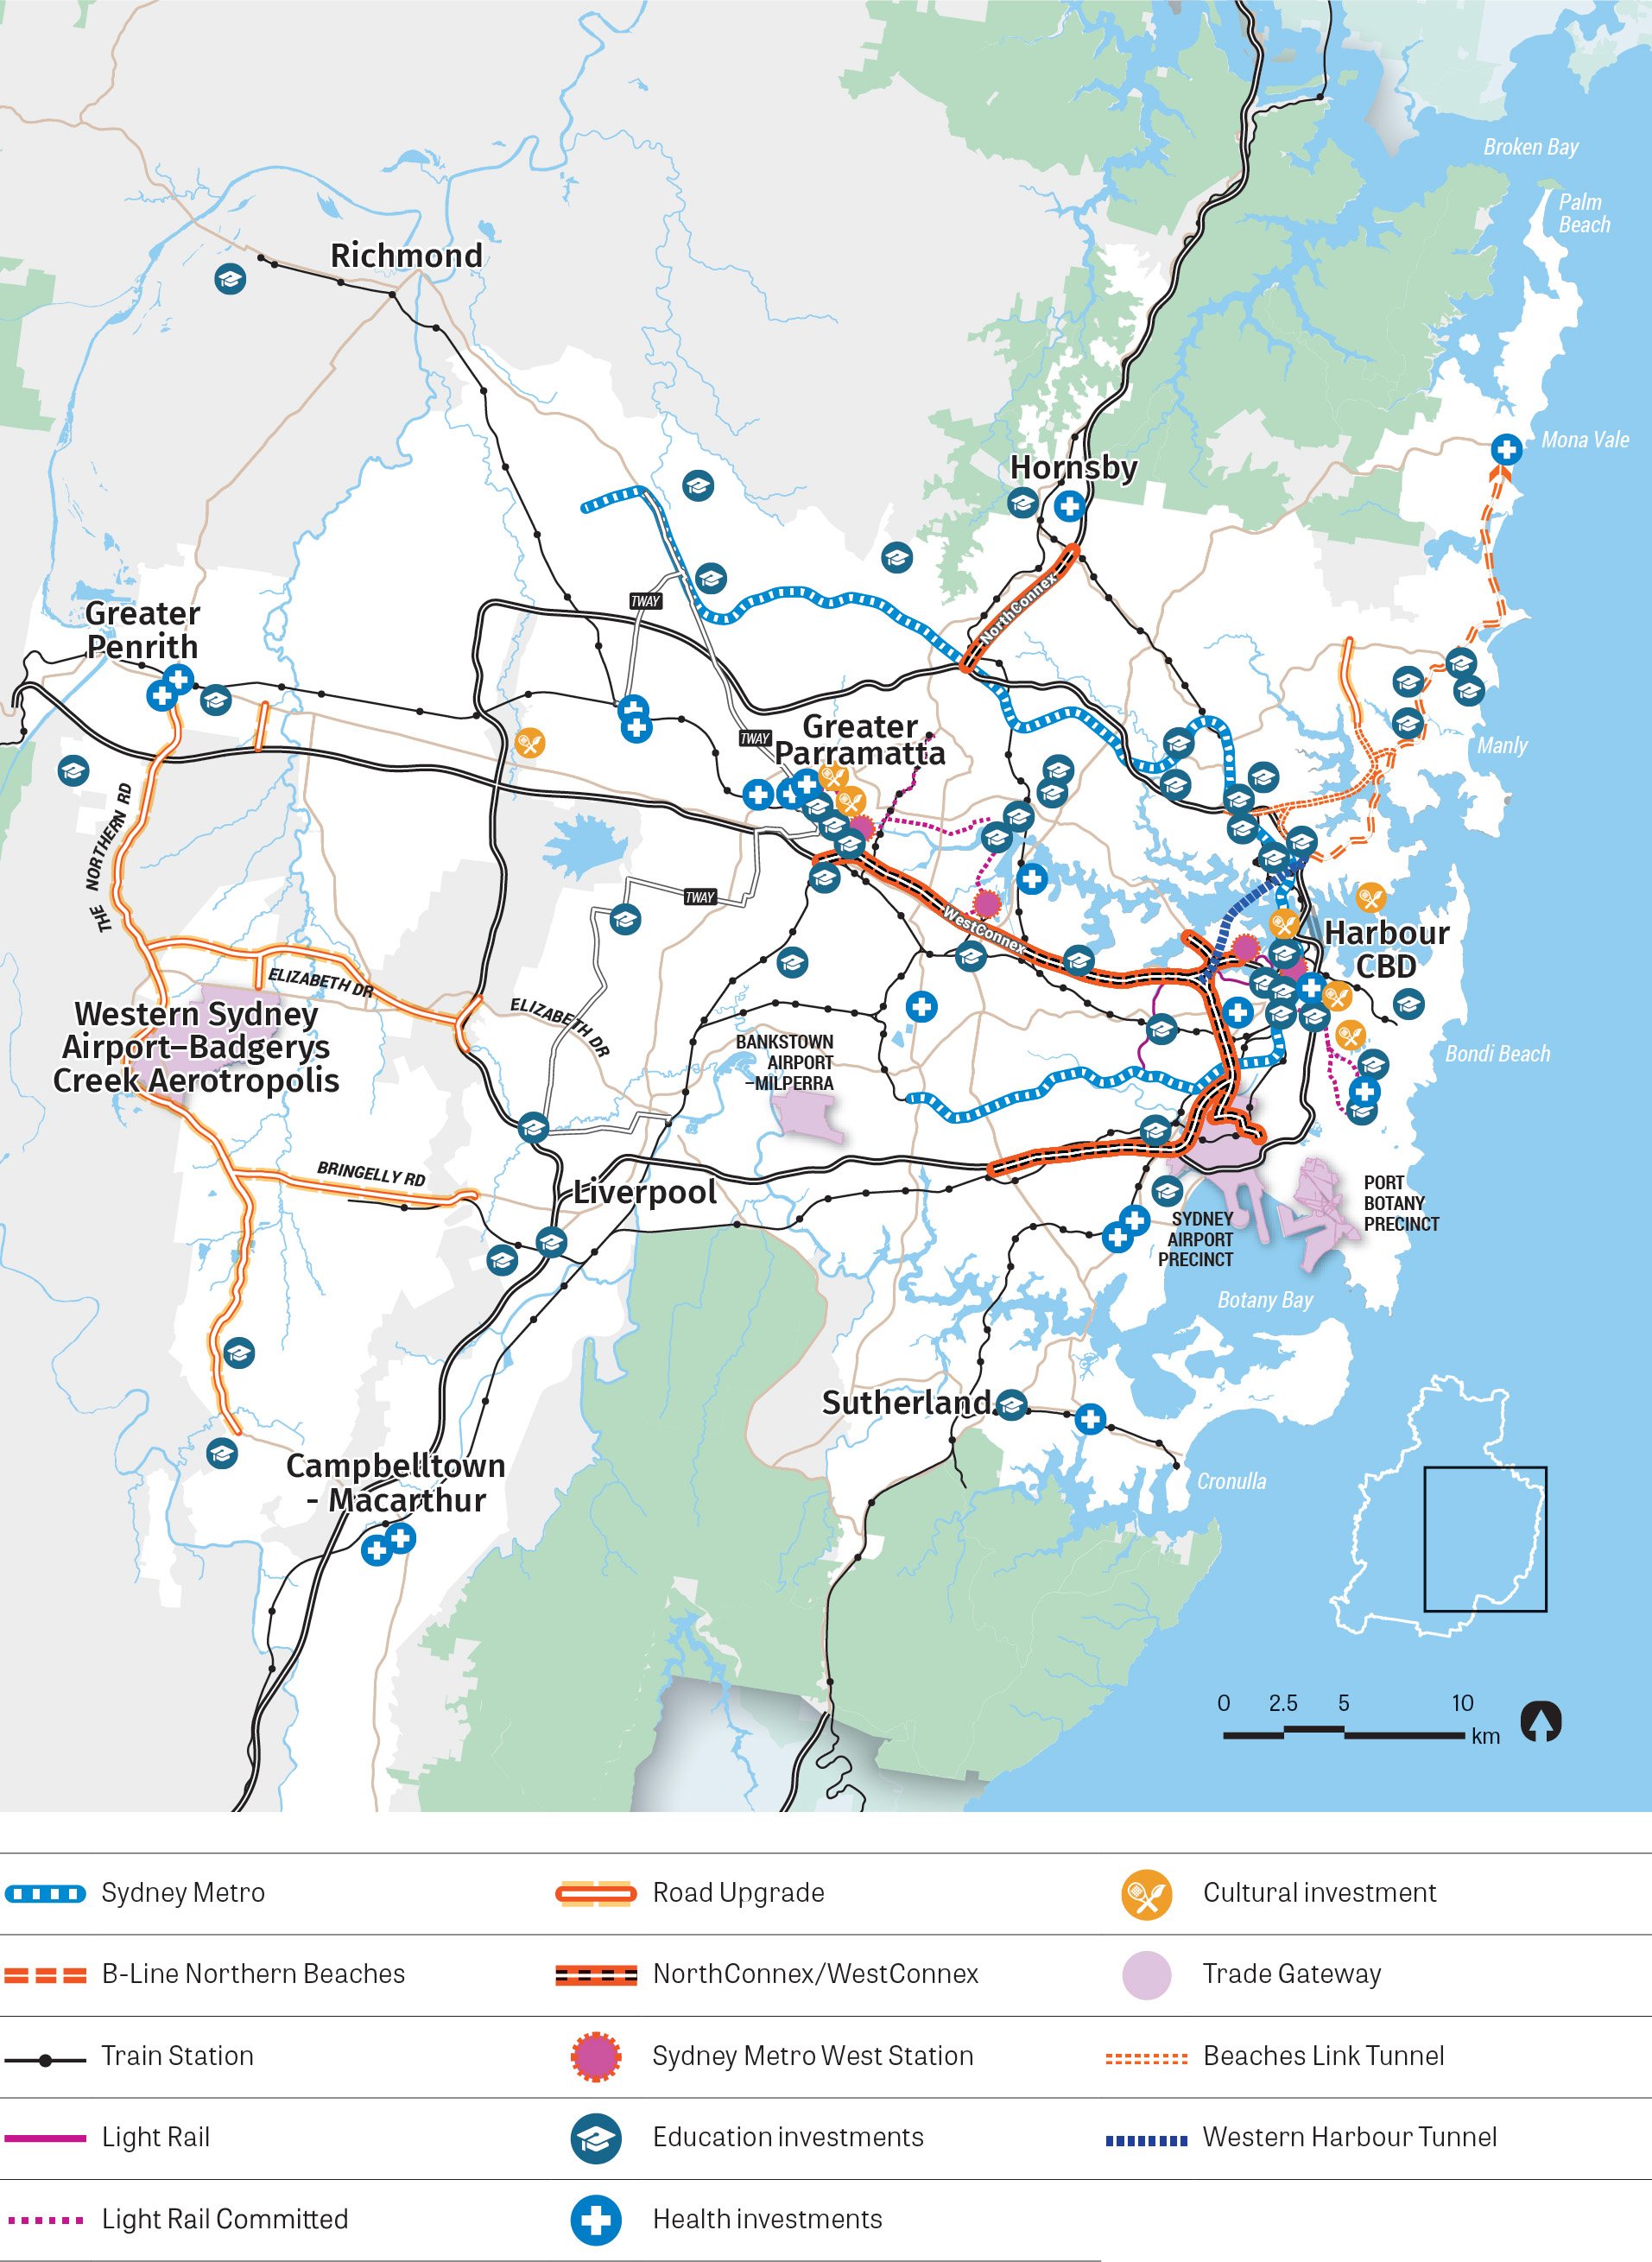 Figure 8: Map showing existing infrastructure investment in Greater Sydney including various modes of transport such as Sydney Metro, Light Rail, B-Line Northern Beaches and NorthConnex/WestConnex.